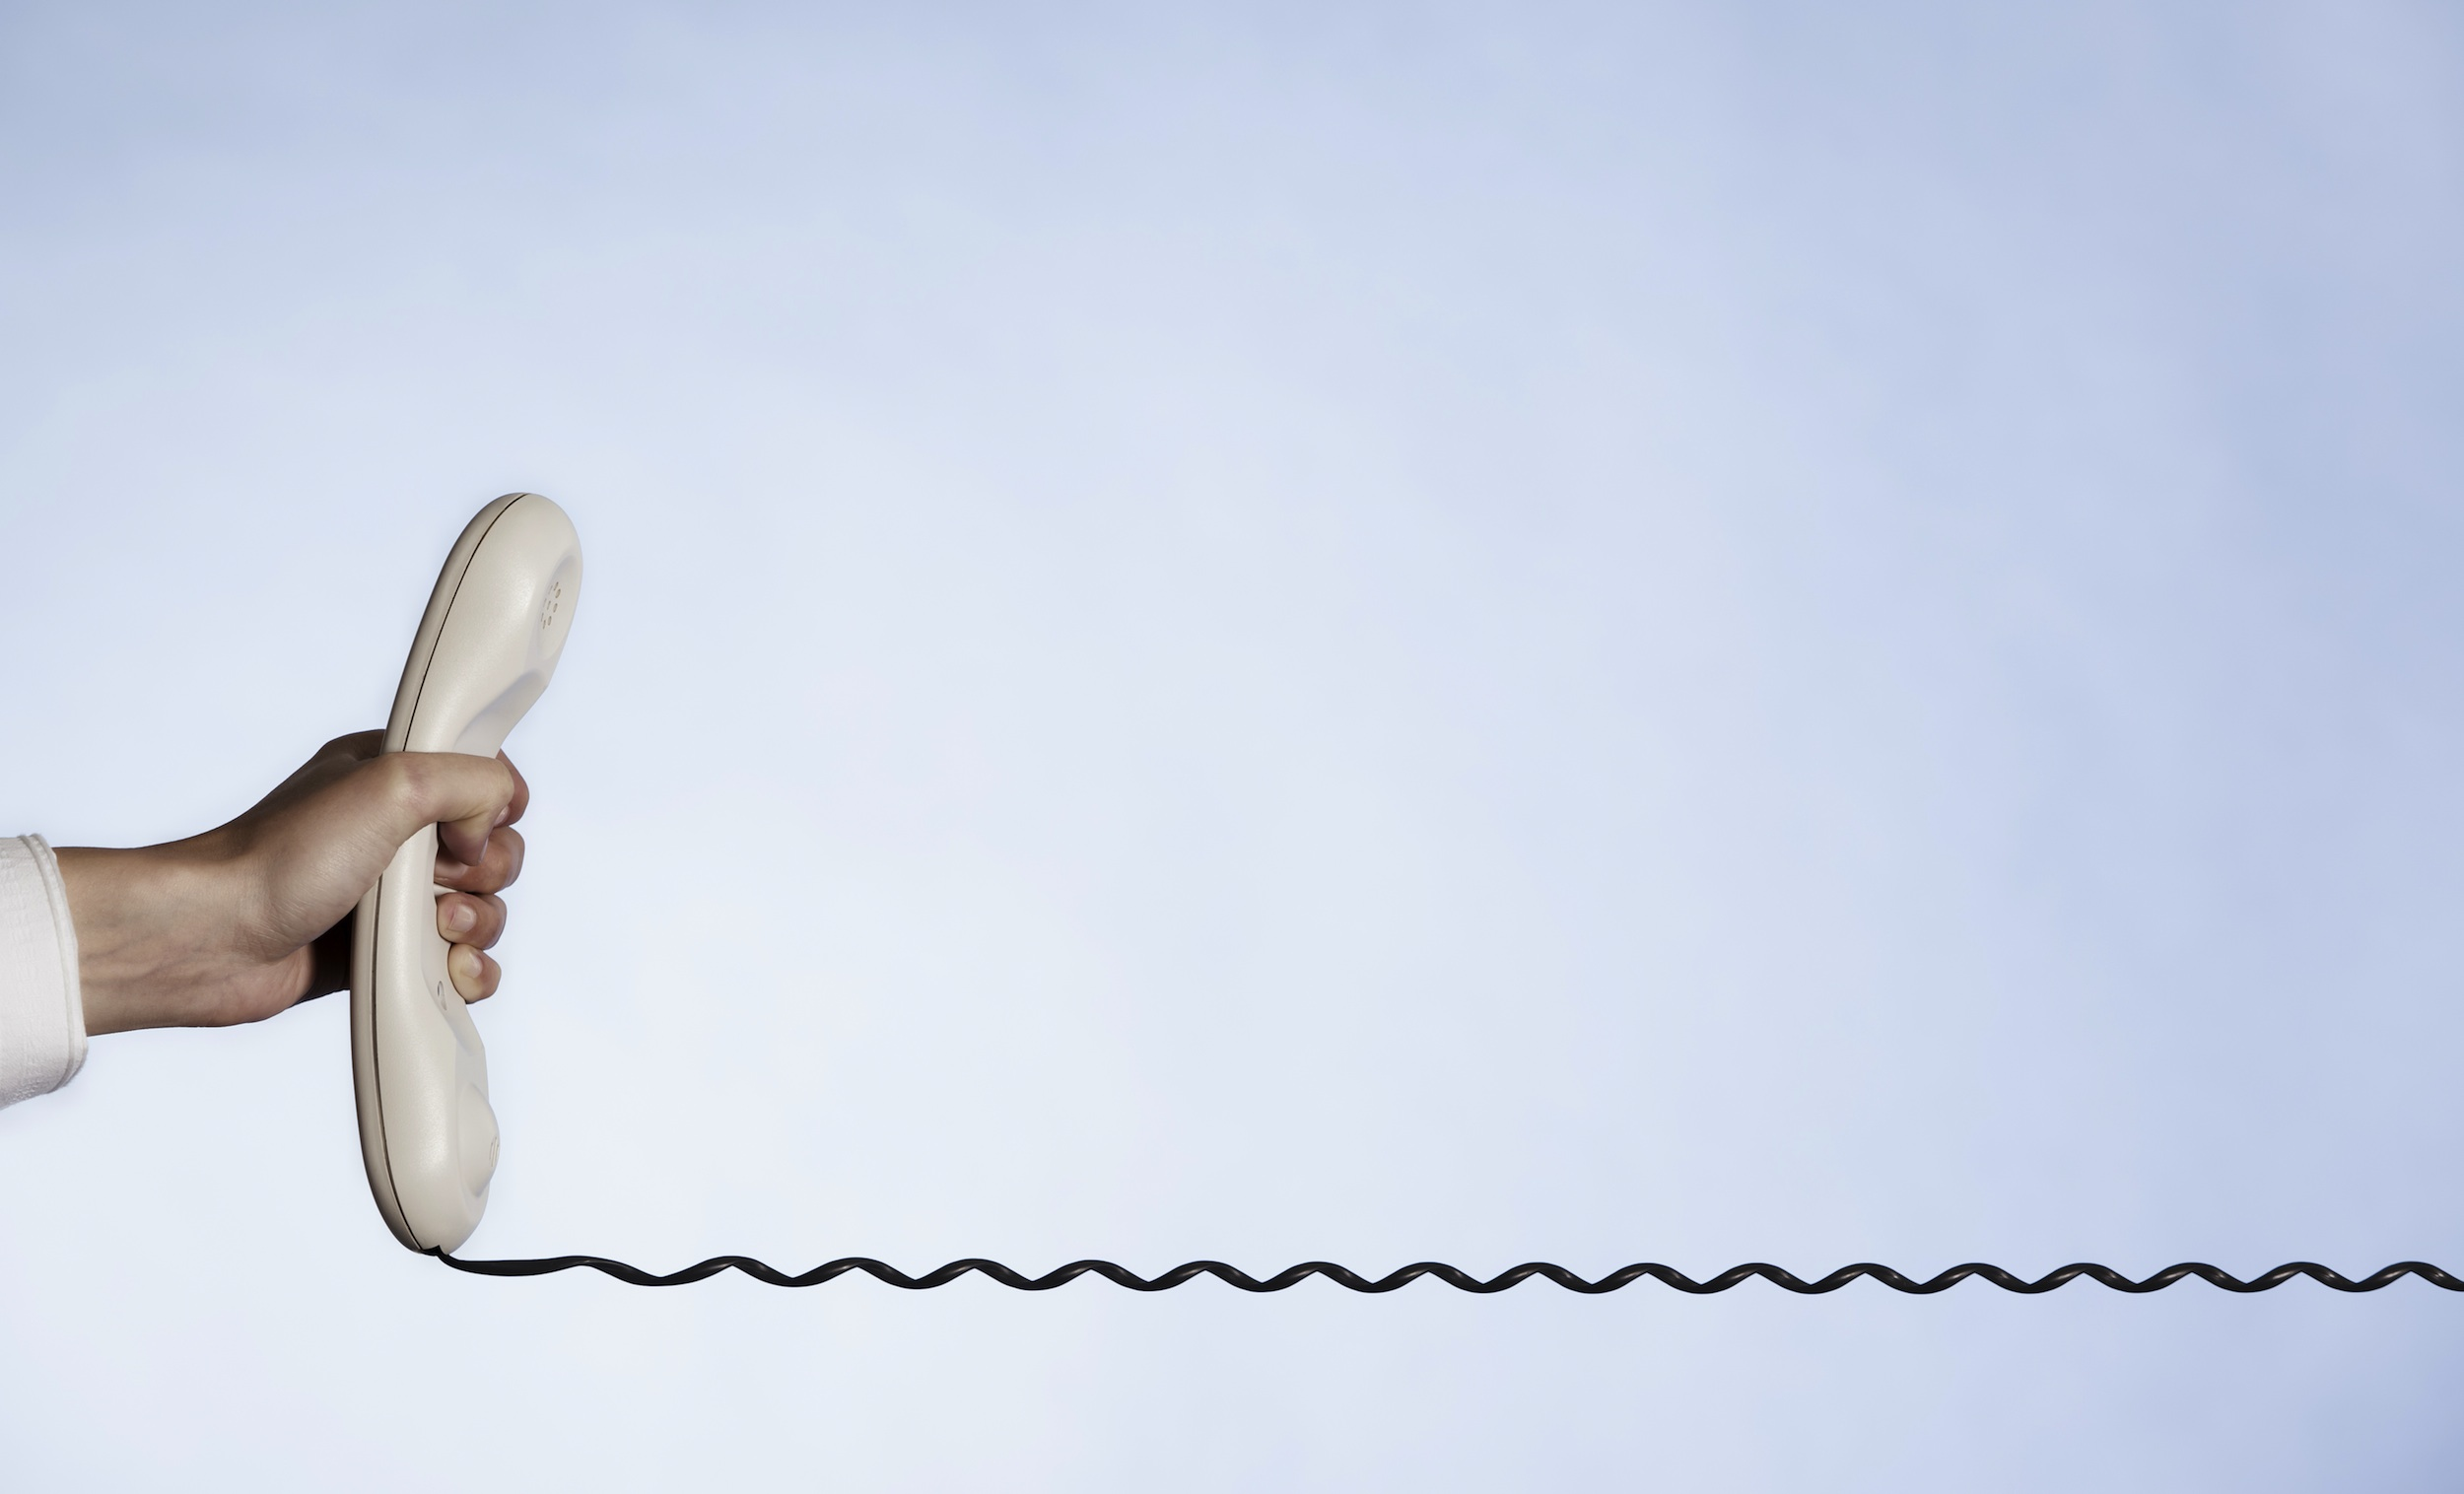 Why Startups Need To Constantly Communicate With Their Customers